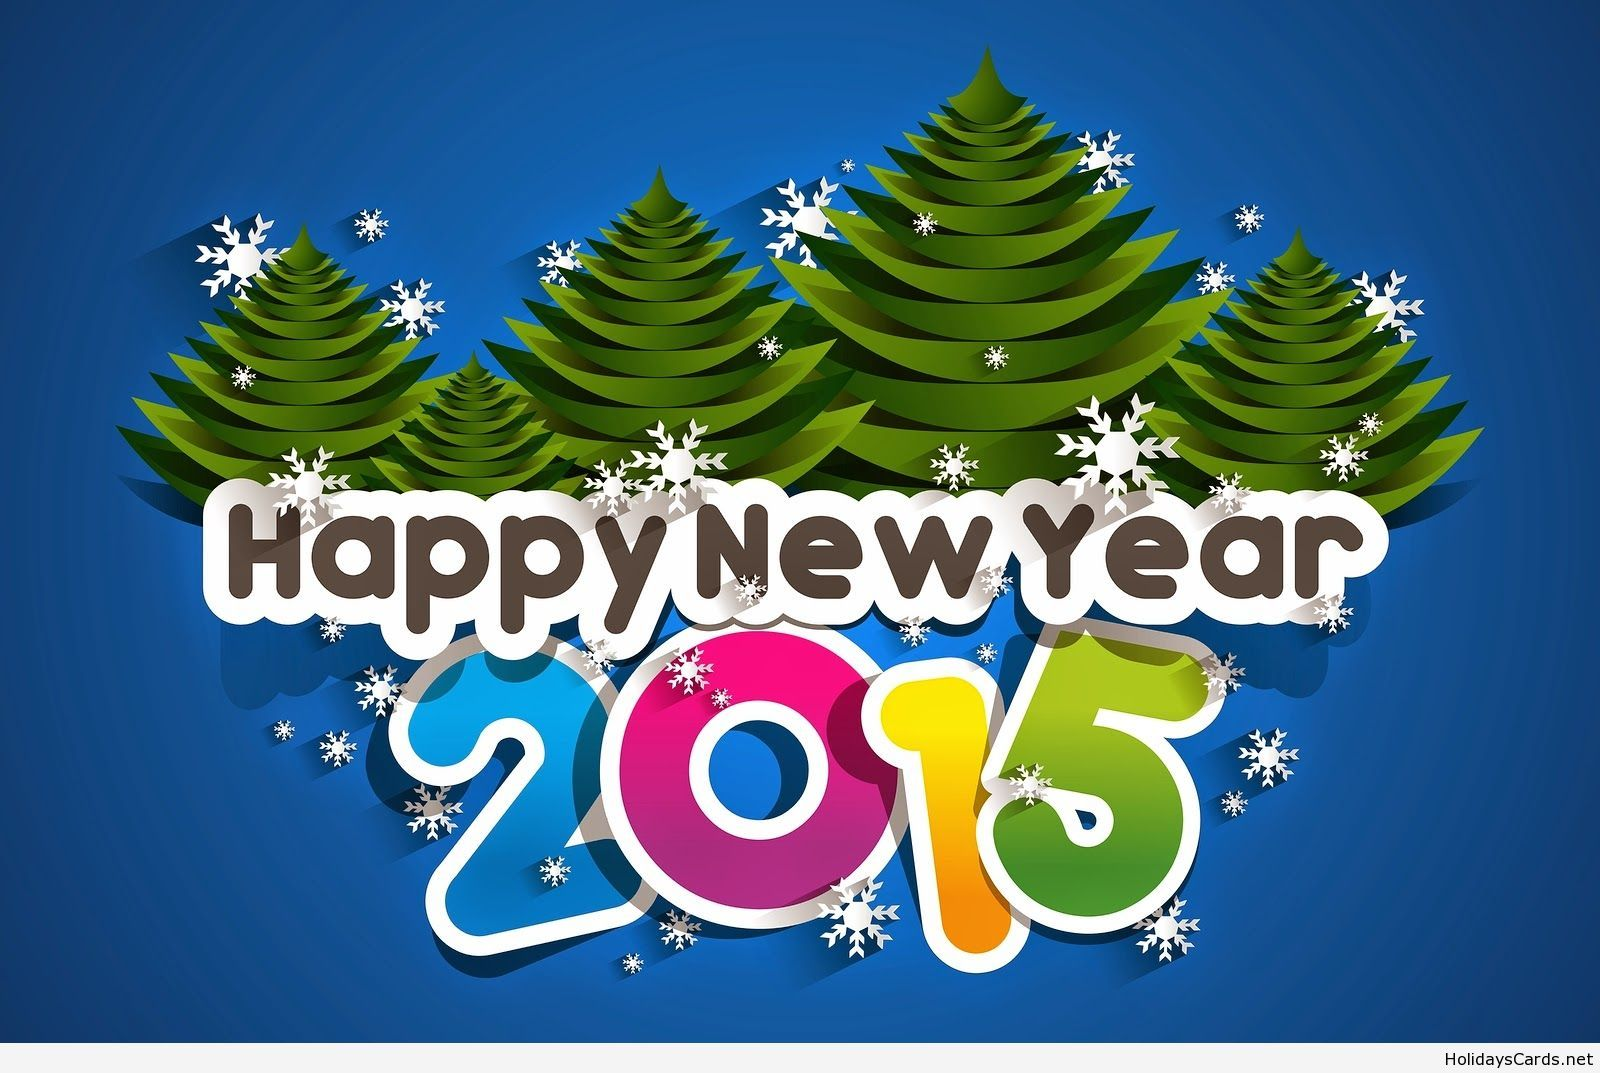 Happy new year 2015 greetings and wishes happy new year happy new year 2015 greetings and wishes kristyandbryce Image collections